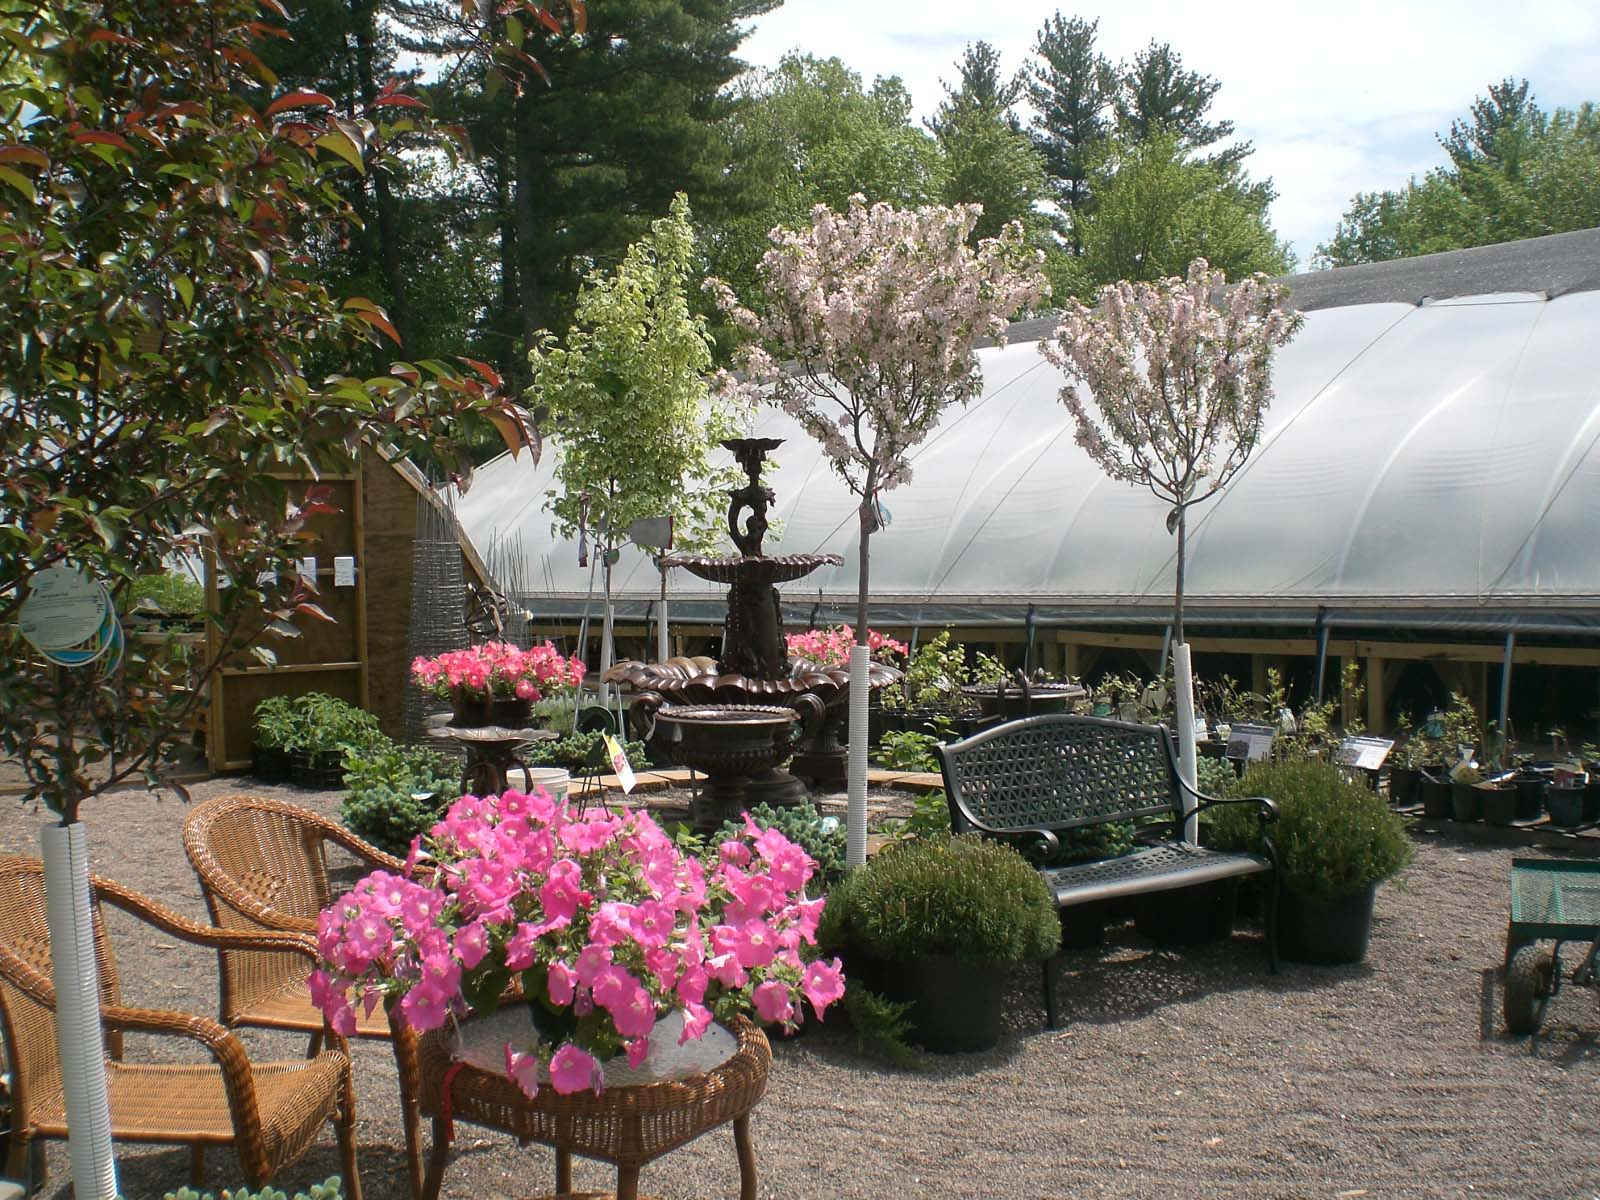 Village Floral And Wood River Garden Store